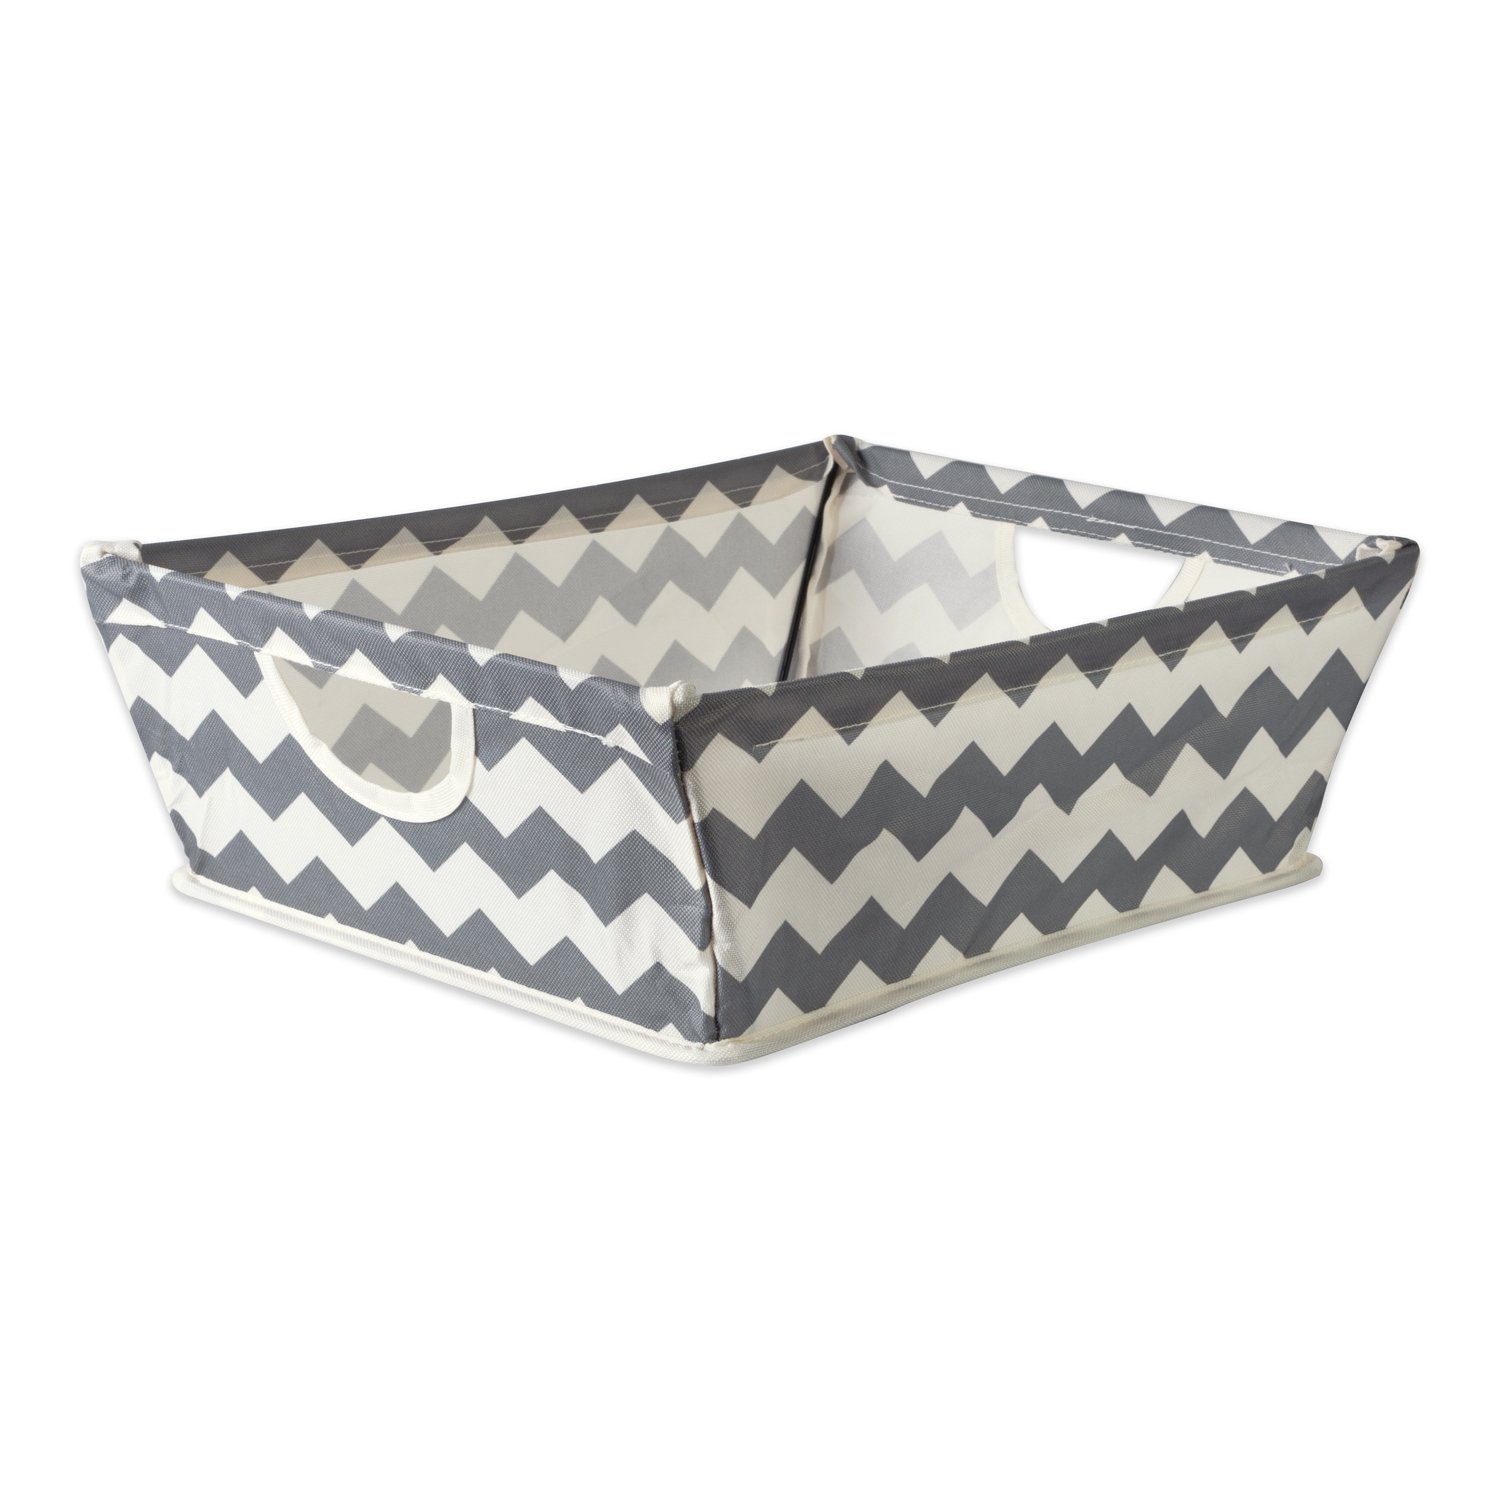 DII Collapsible Polyester Trapezoid Storage Basket, Home Organizational Solution for Office, Bedroom, Closet, & Toys (Tray - 16x12x5'') Gray Chevron